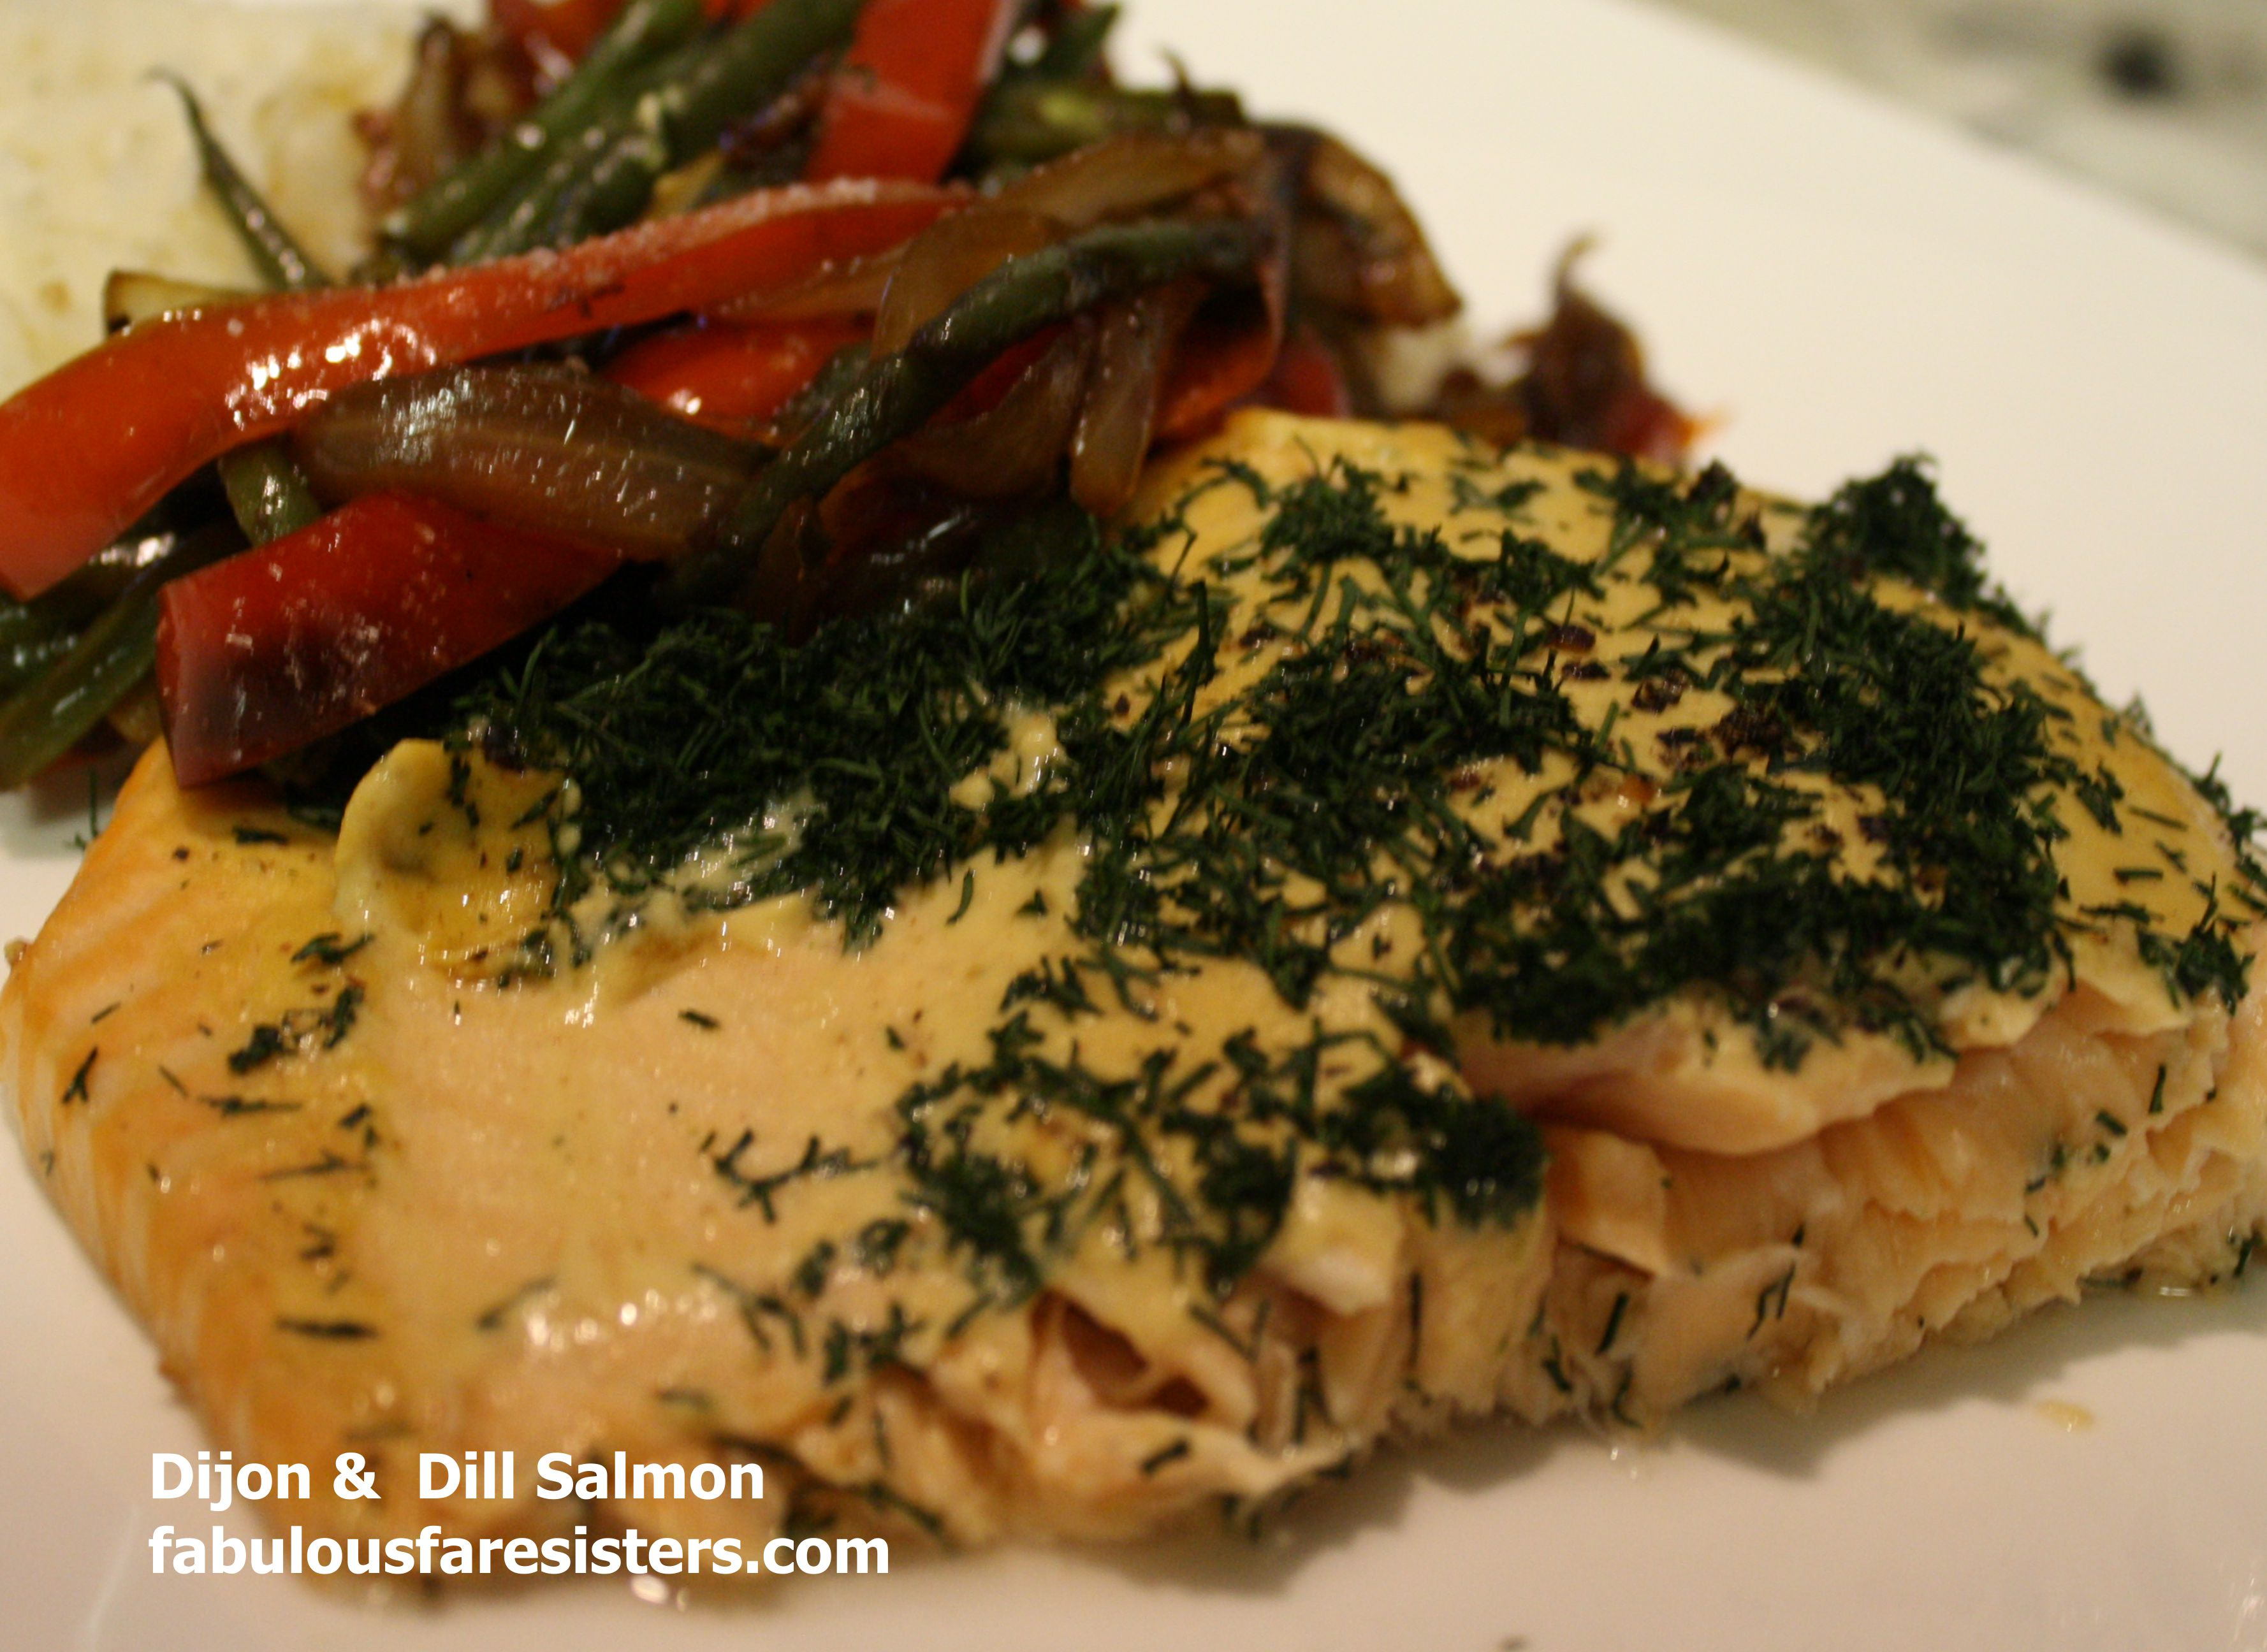 ... salmon. Well tonight is my honey's salmon supper. I made the veggies